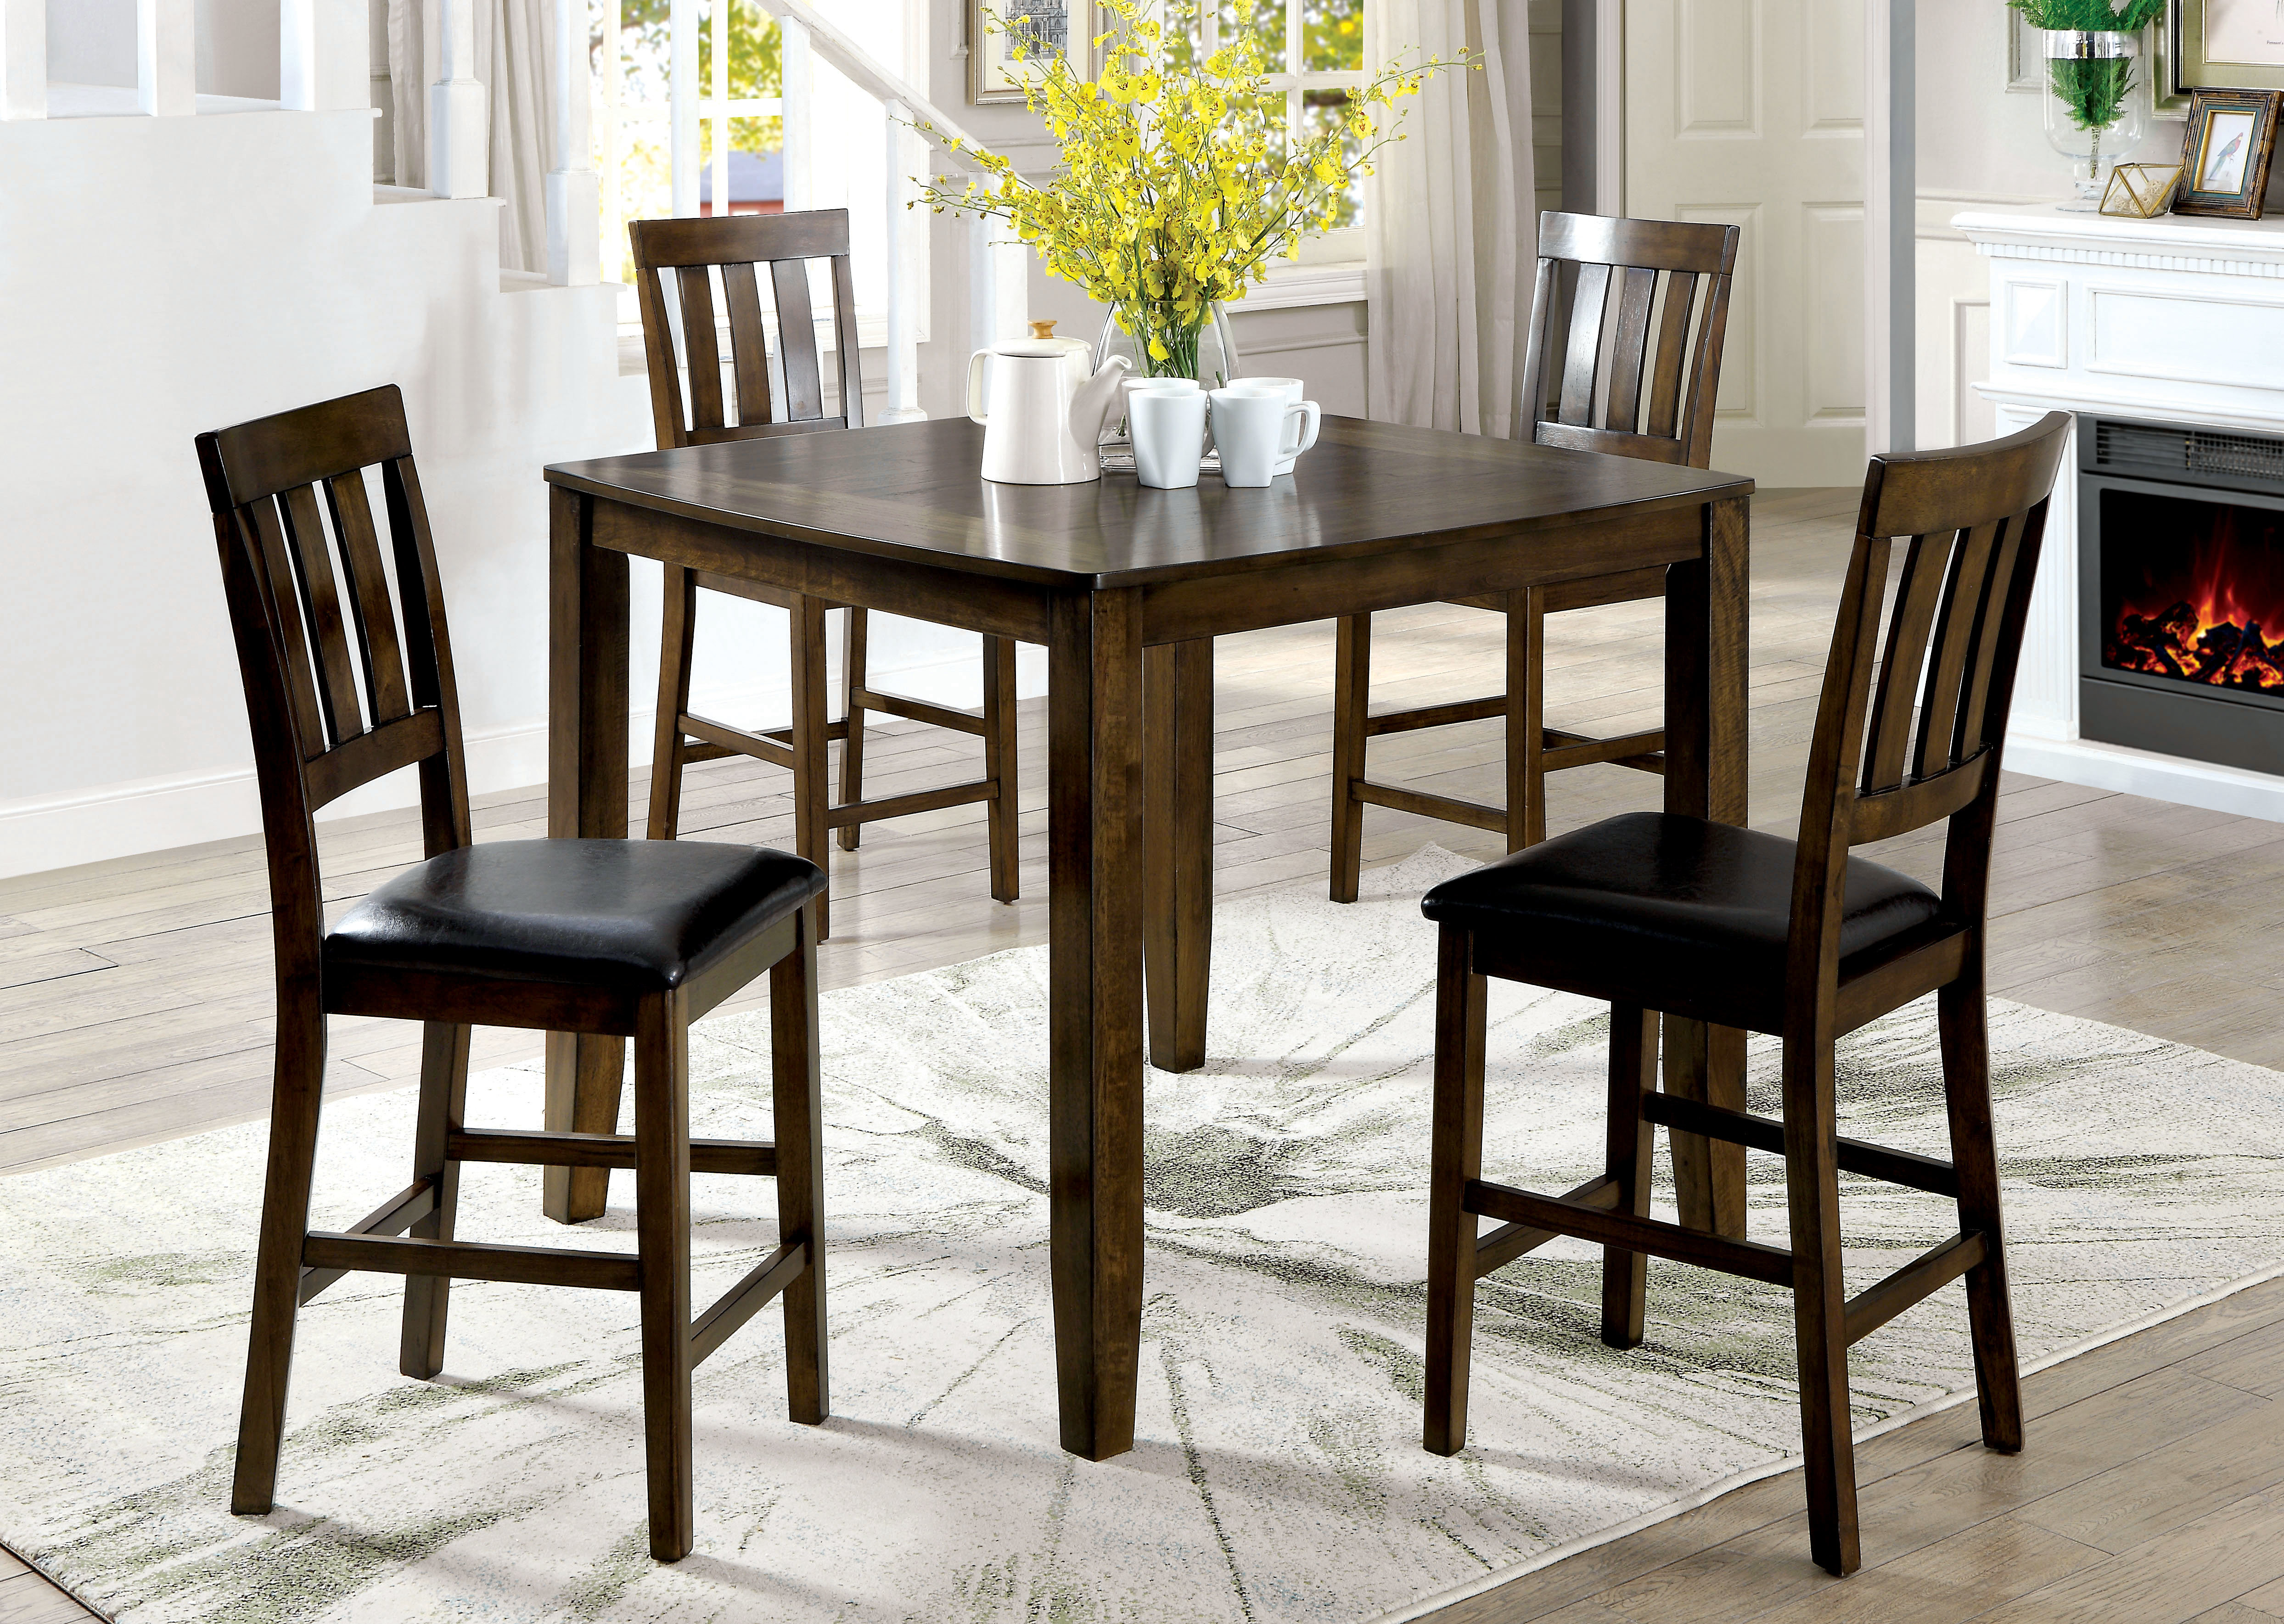 Guevara Transitional 5 Piece Counter Height Dining Set For Best And Newest Tavarez 5 Piece Dining Sets (Image 9 of 20)